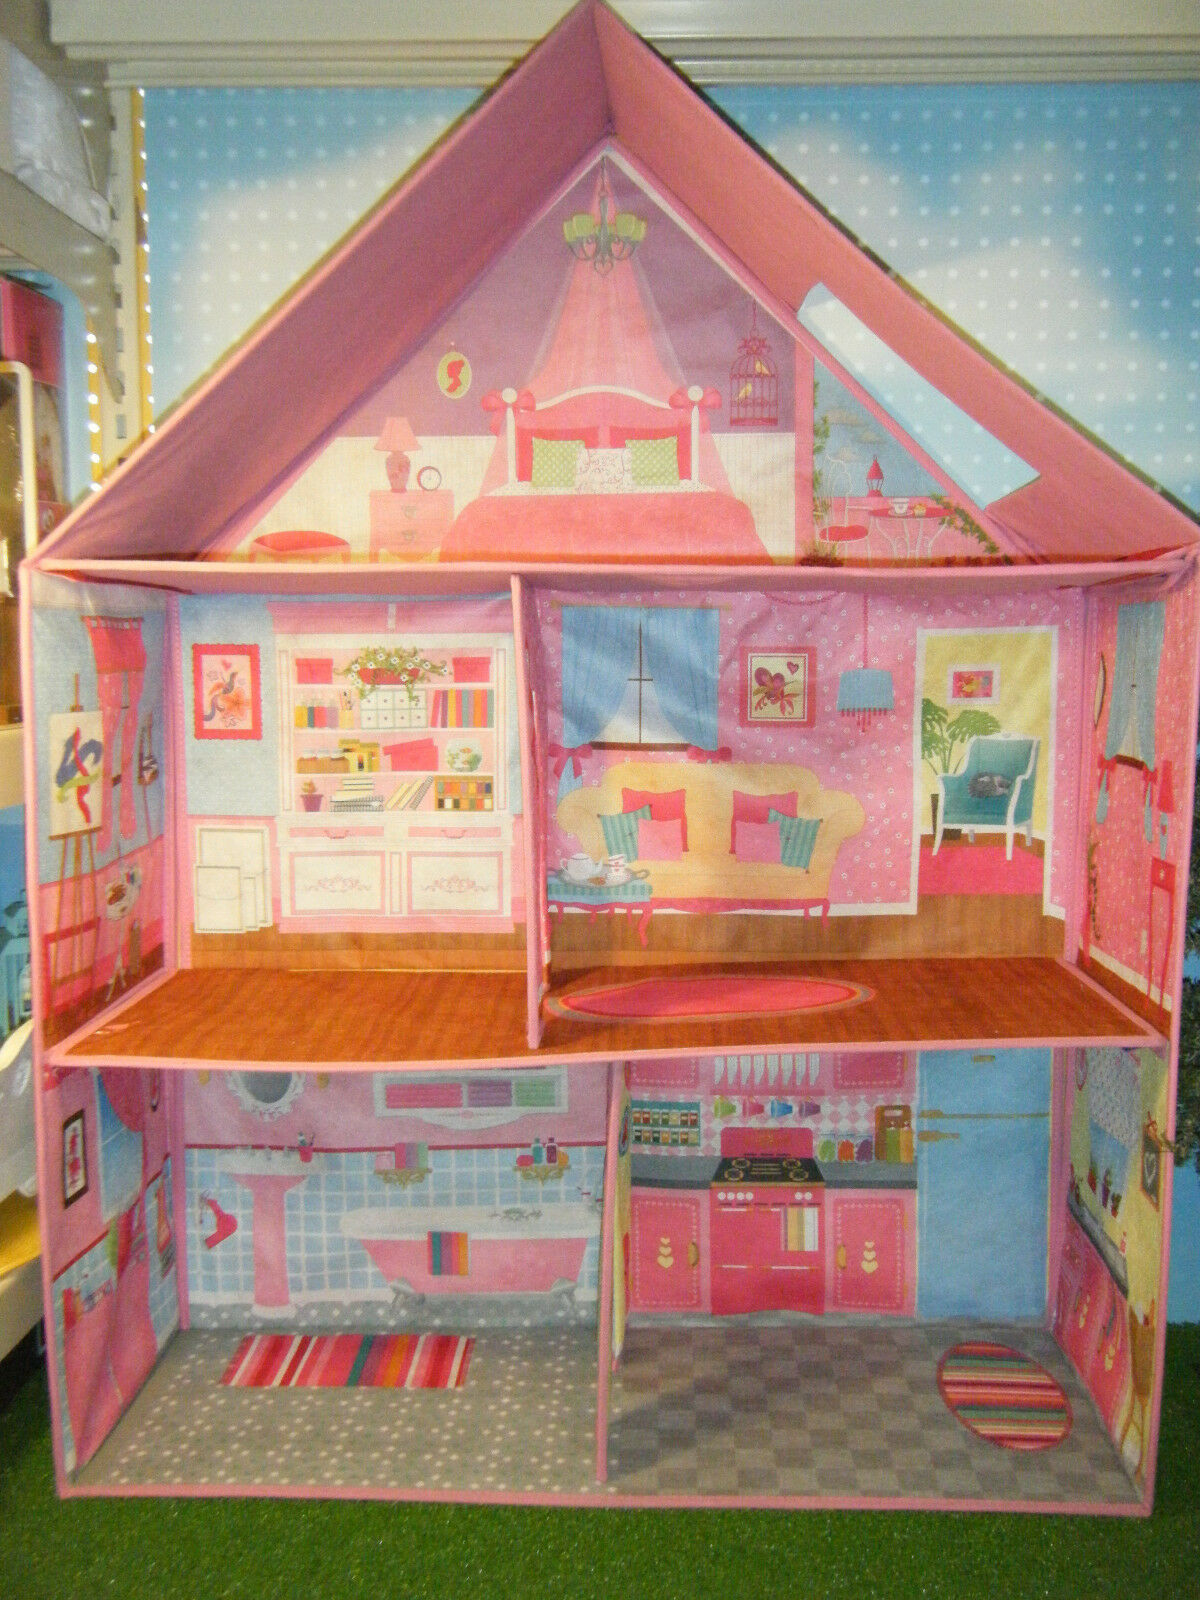 BARBIE DOLL SIZE CALEGO 3D IMAGINATION TRADITIONAL DOLL HOUSE *NEW*